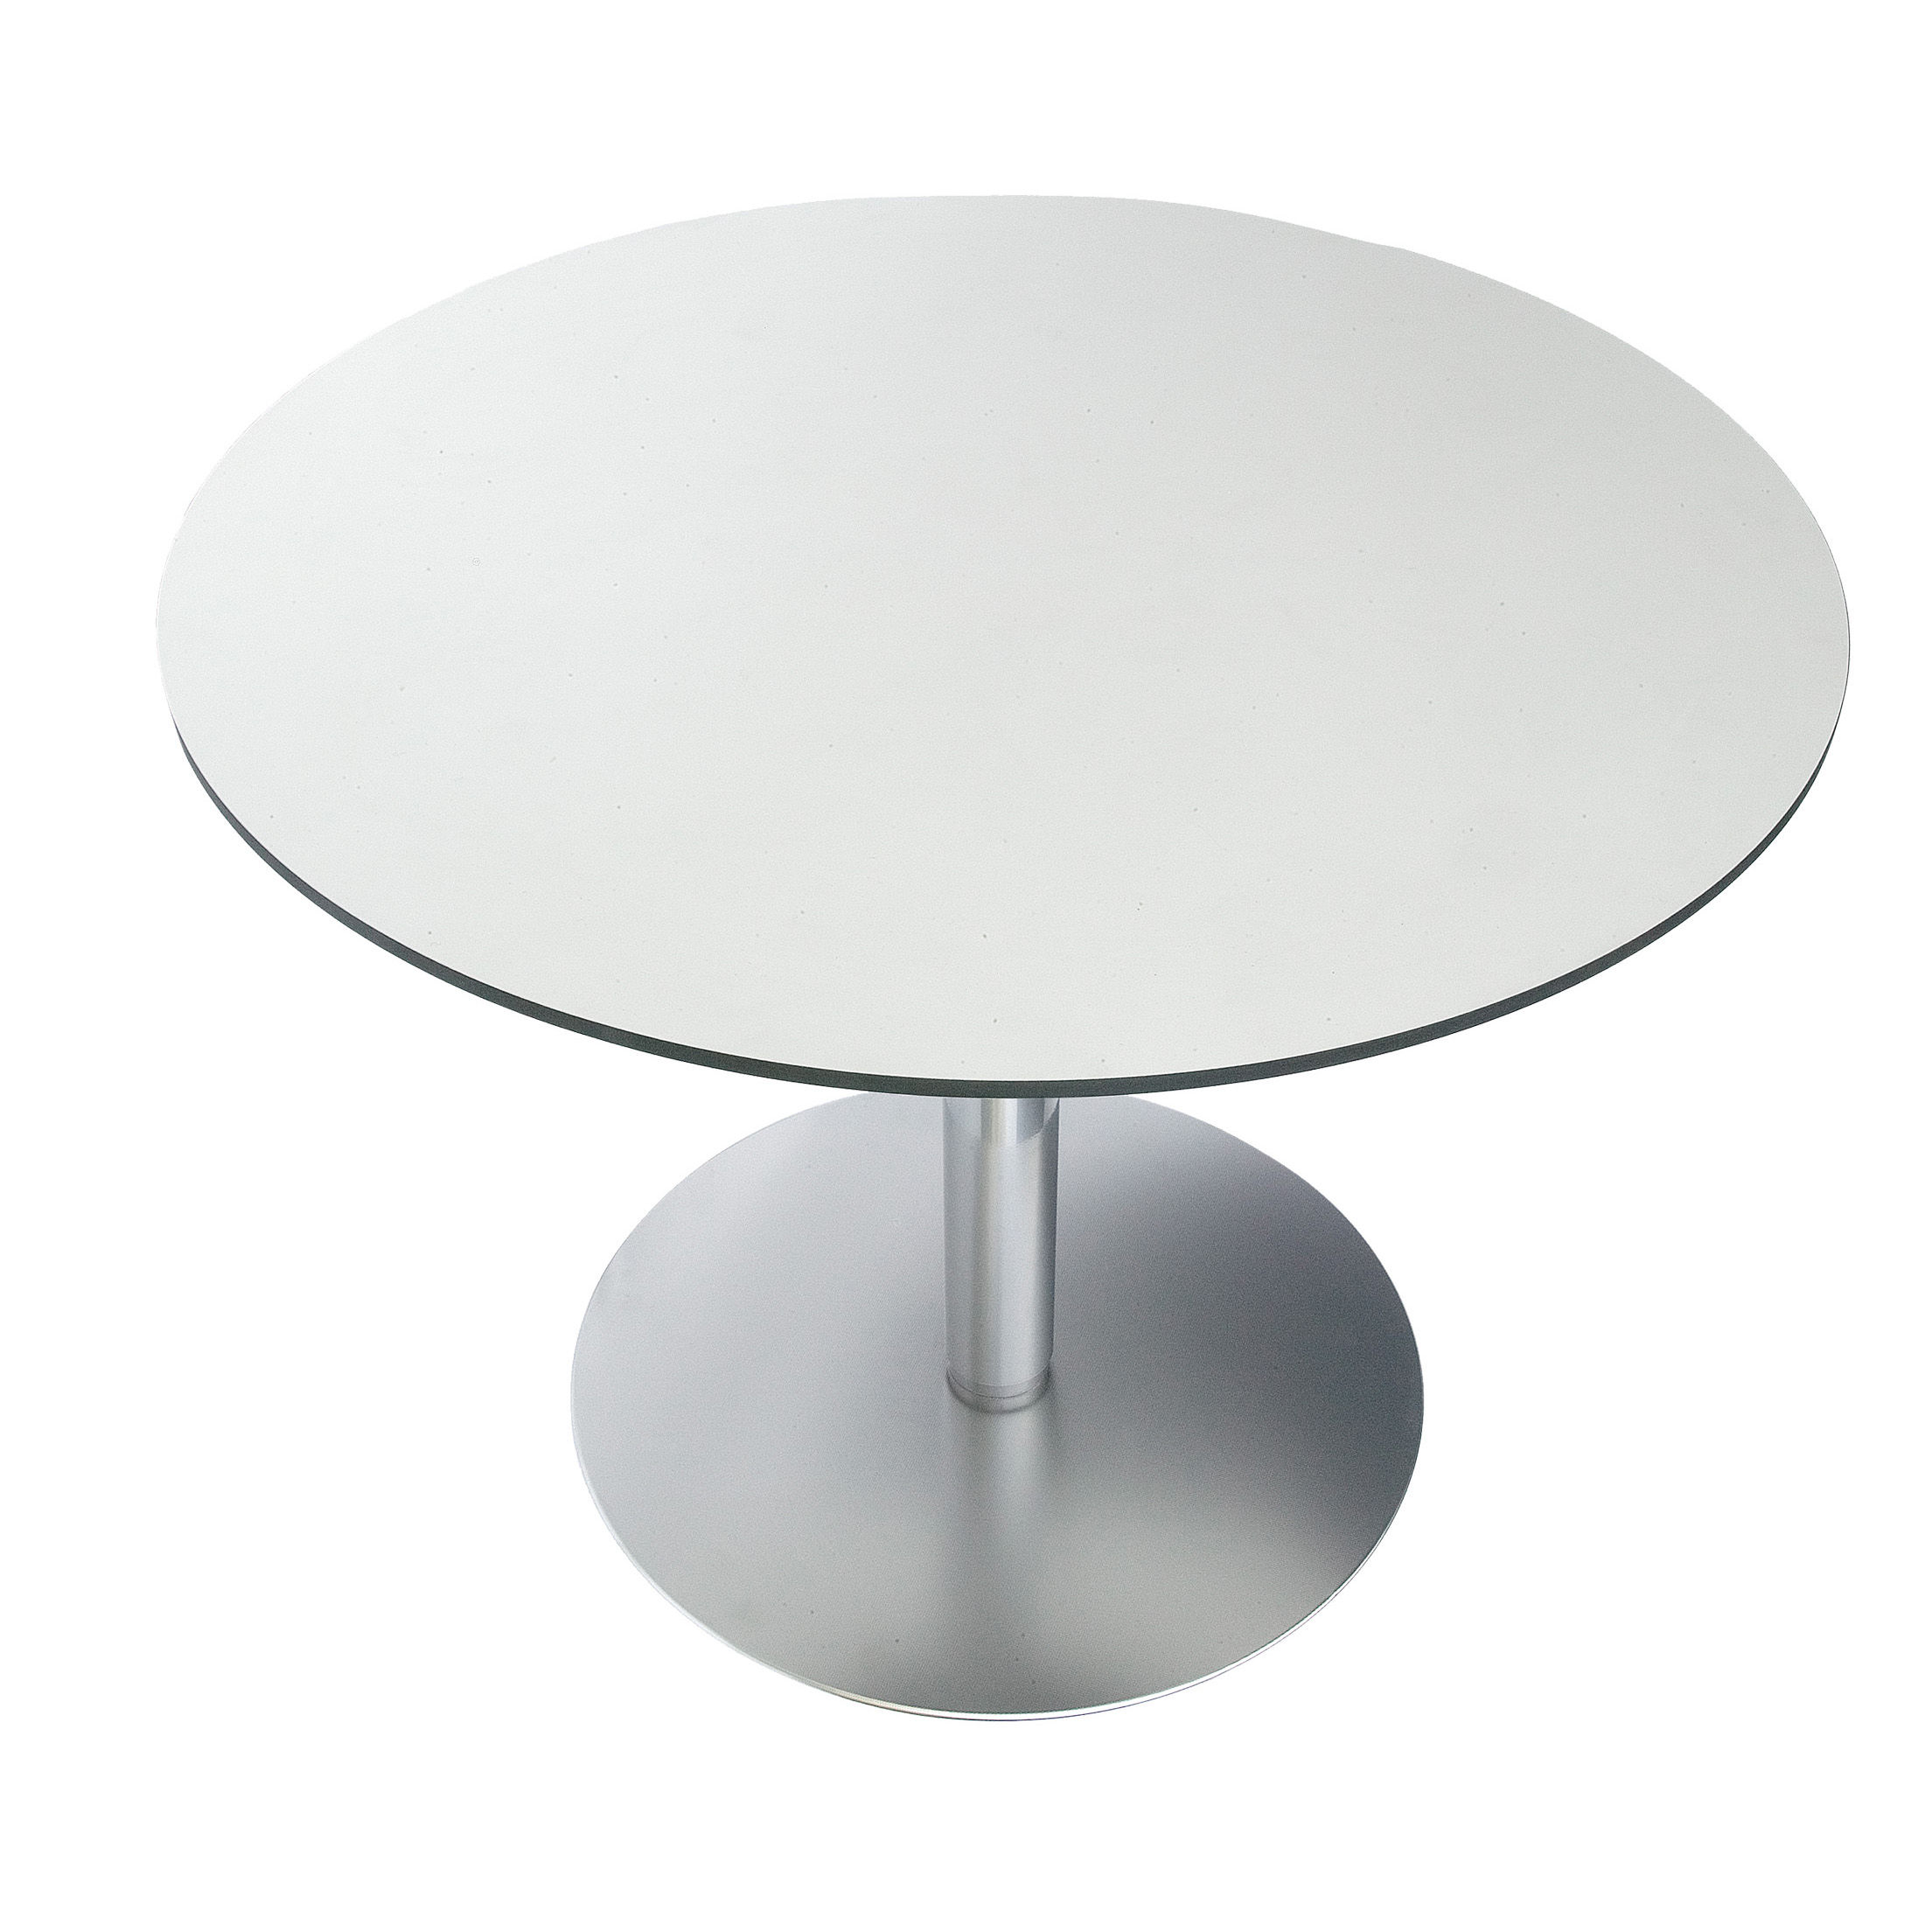 Furniture - High Tables - Brio Adjustable height table - Adjustable height - Ø 60 cm by Lapalma - White HPL - HPL, Steel